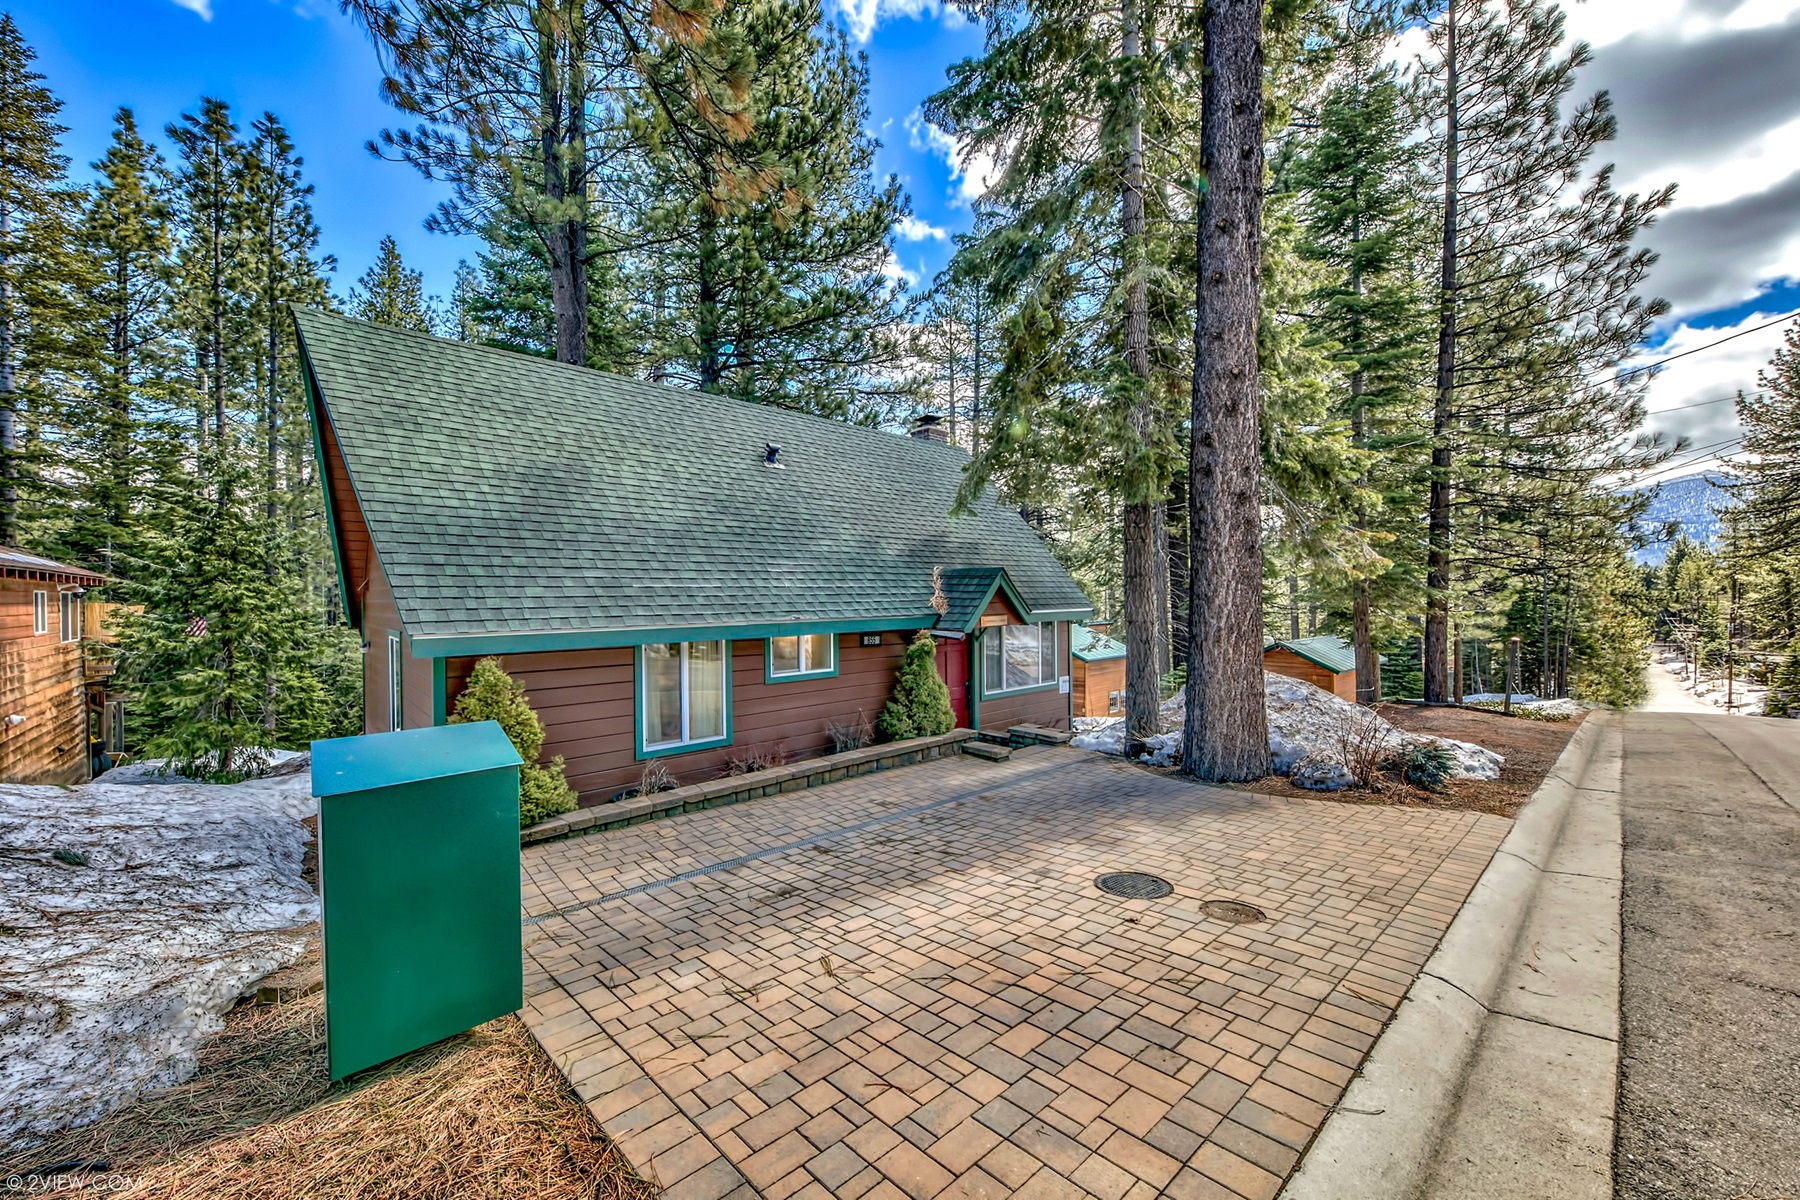 Additional photo for property listing at 855 Clement Street, South Lake Tahoe, CA 96150 855 Clement Street South Lake Tahoe, California 96150 United States